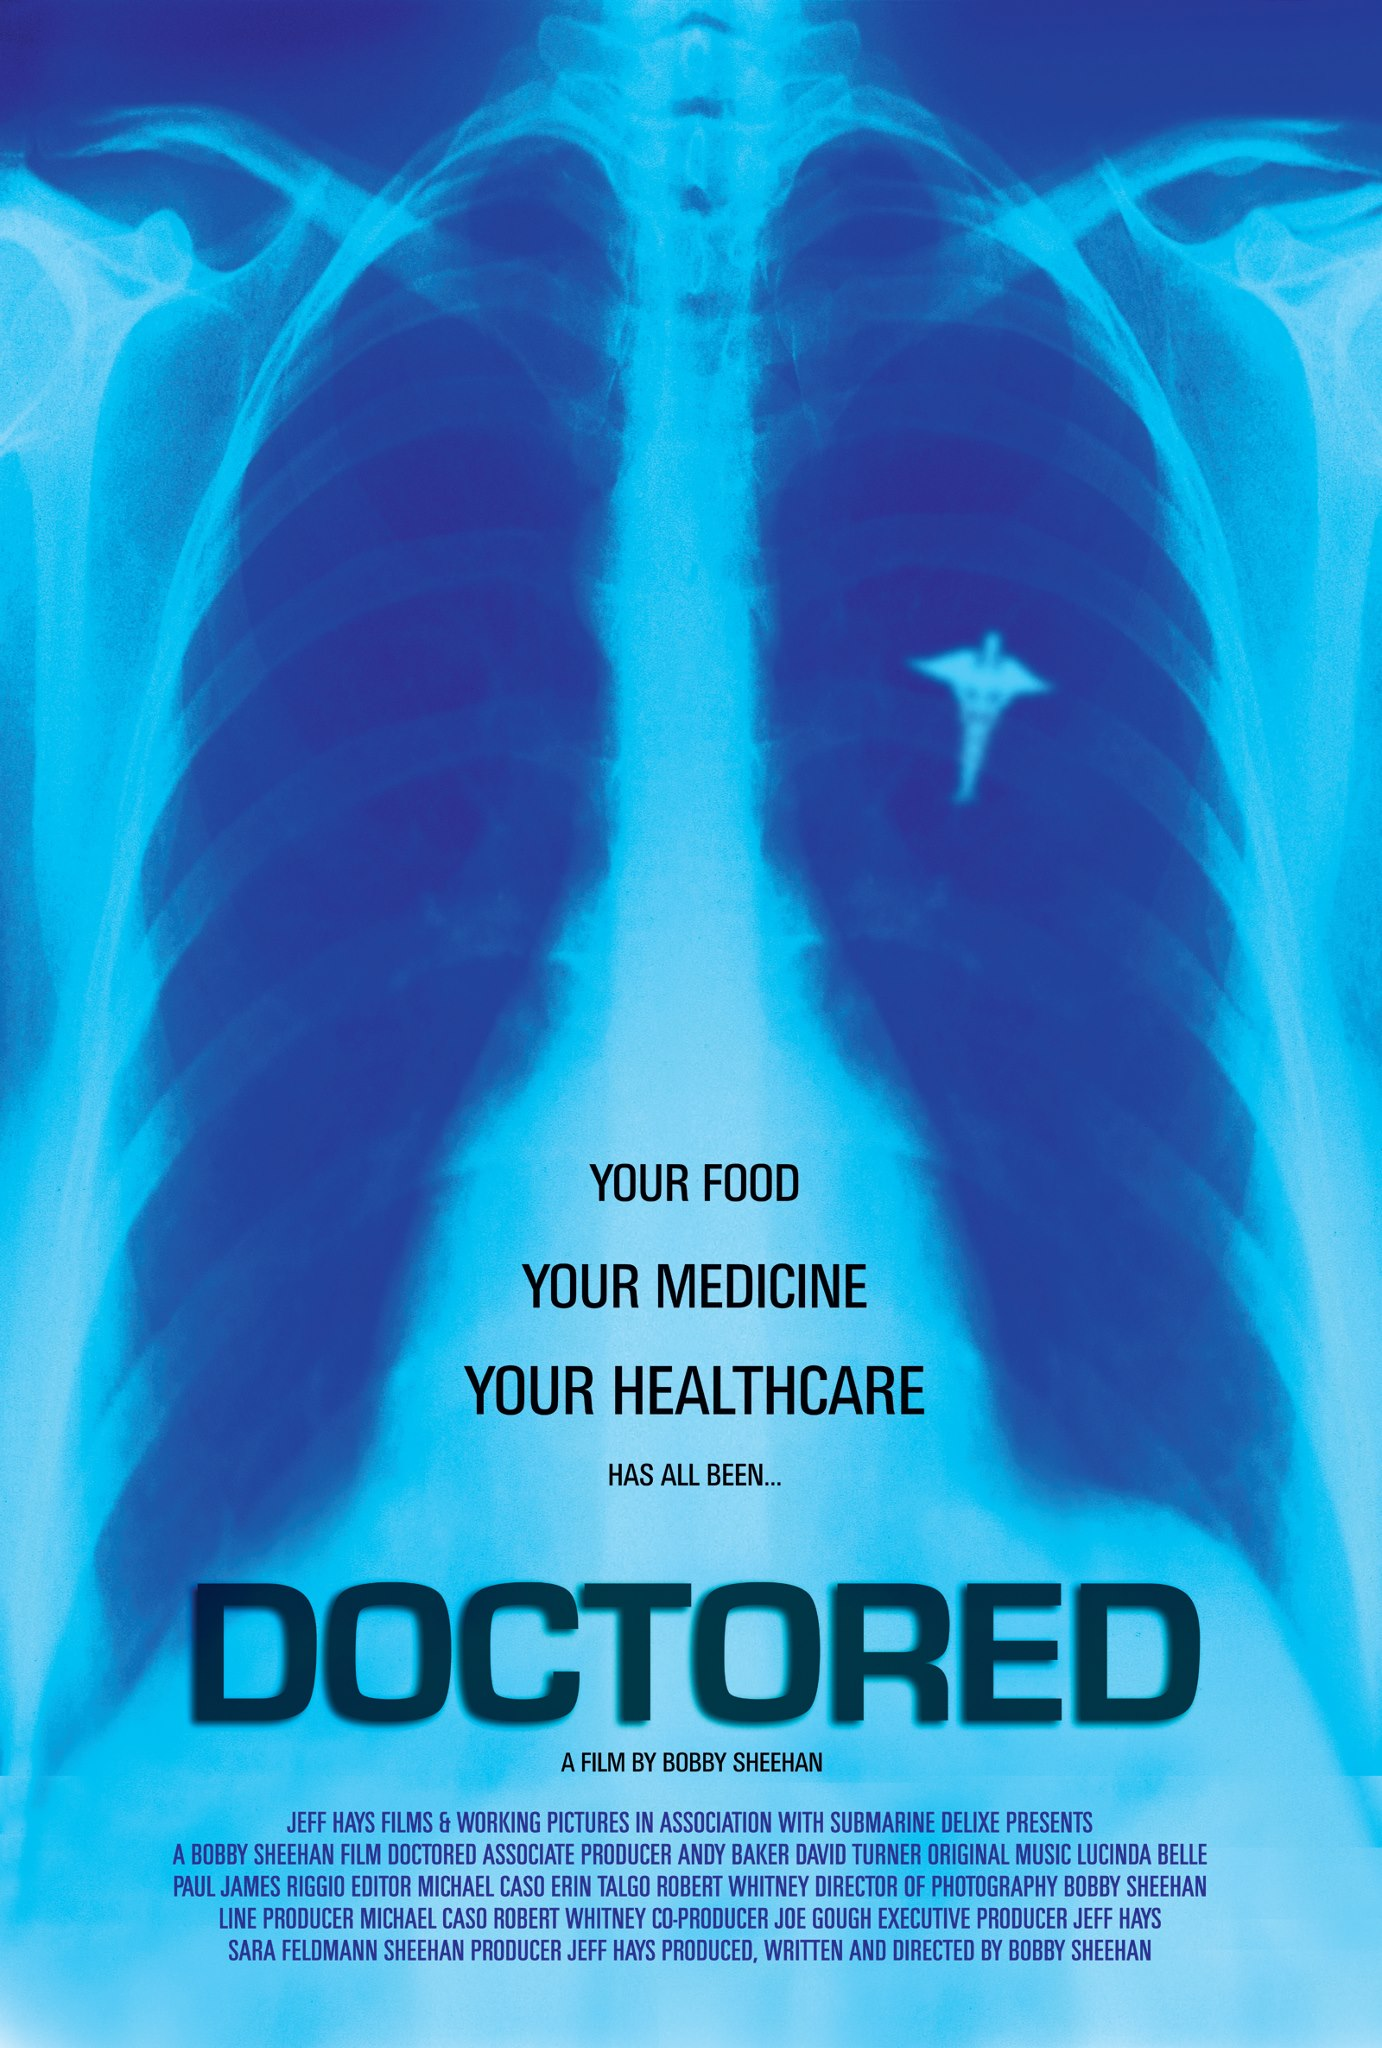 Has Your Healthcare Been Doctored